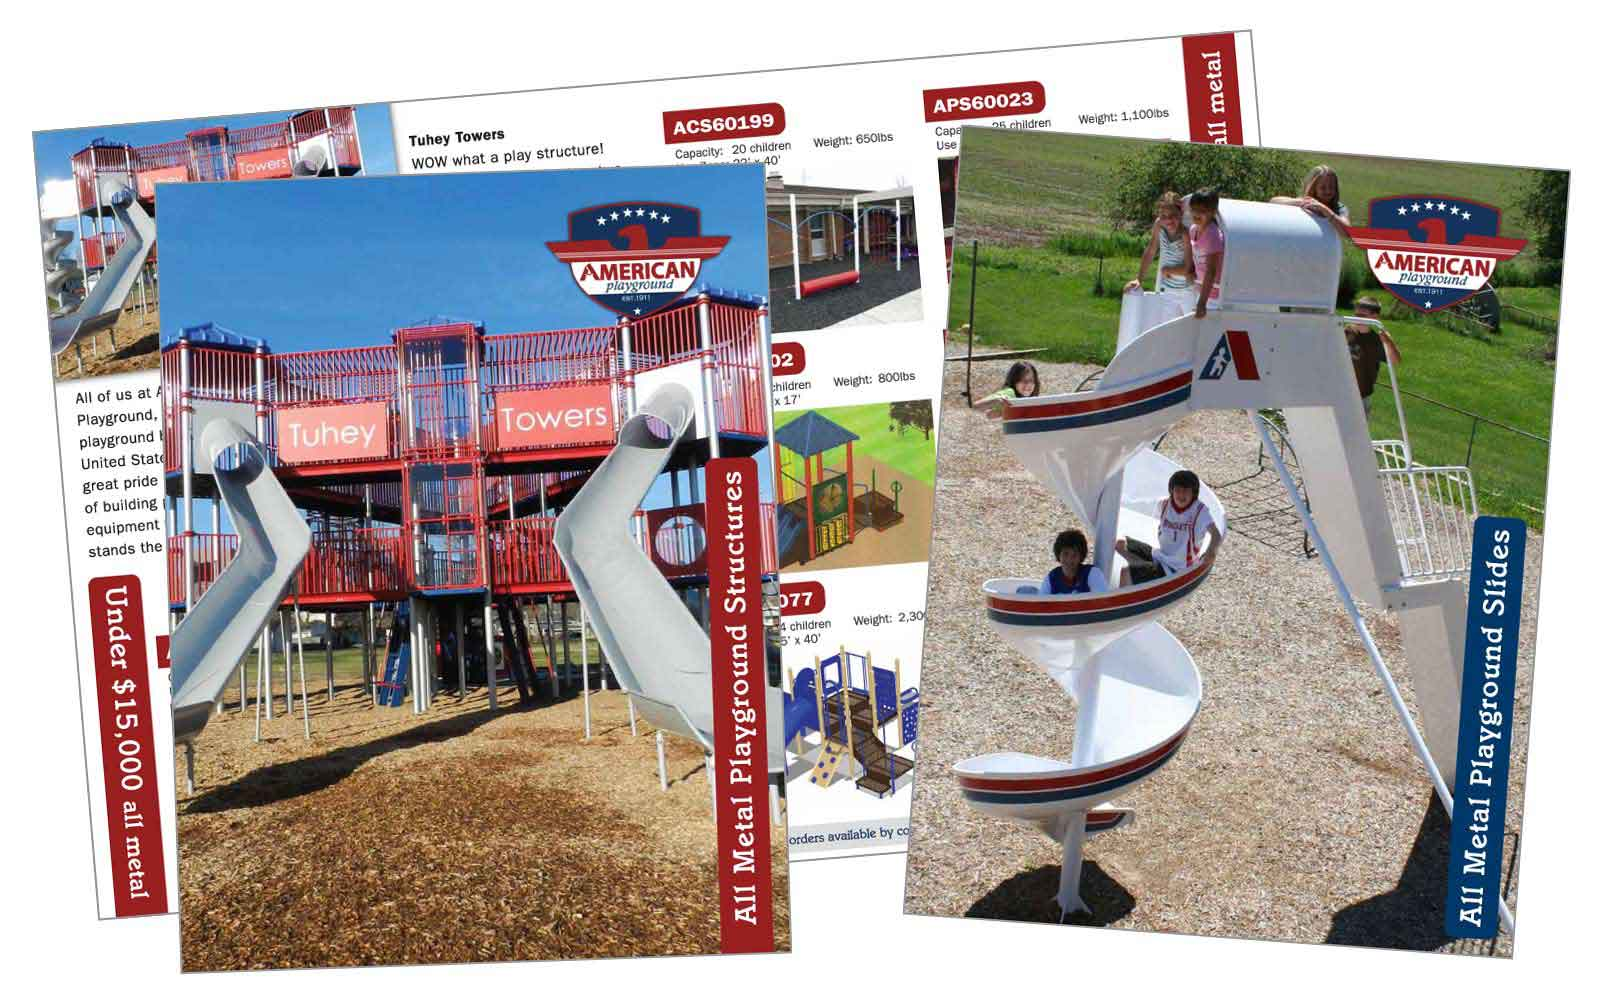 american playground marcosolo design advertising agency print